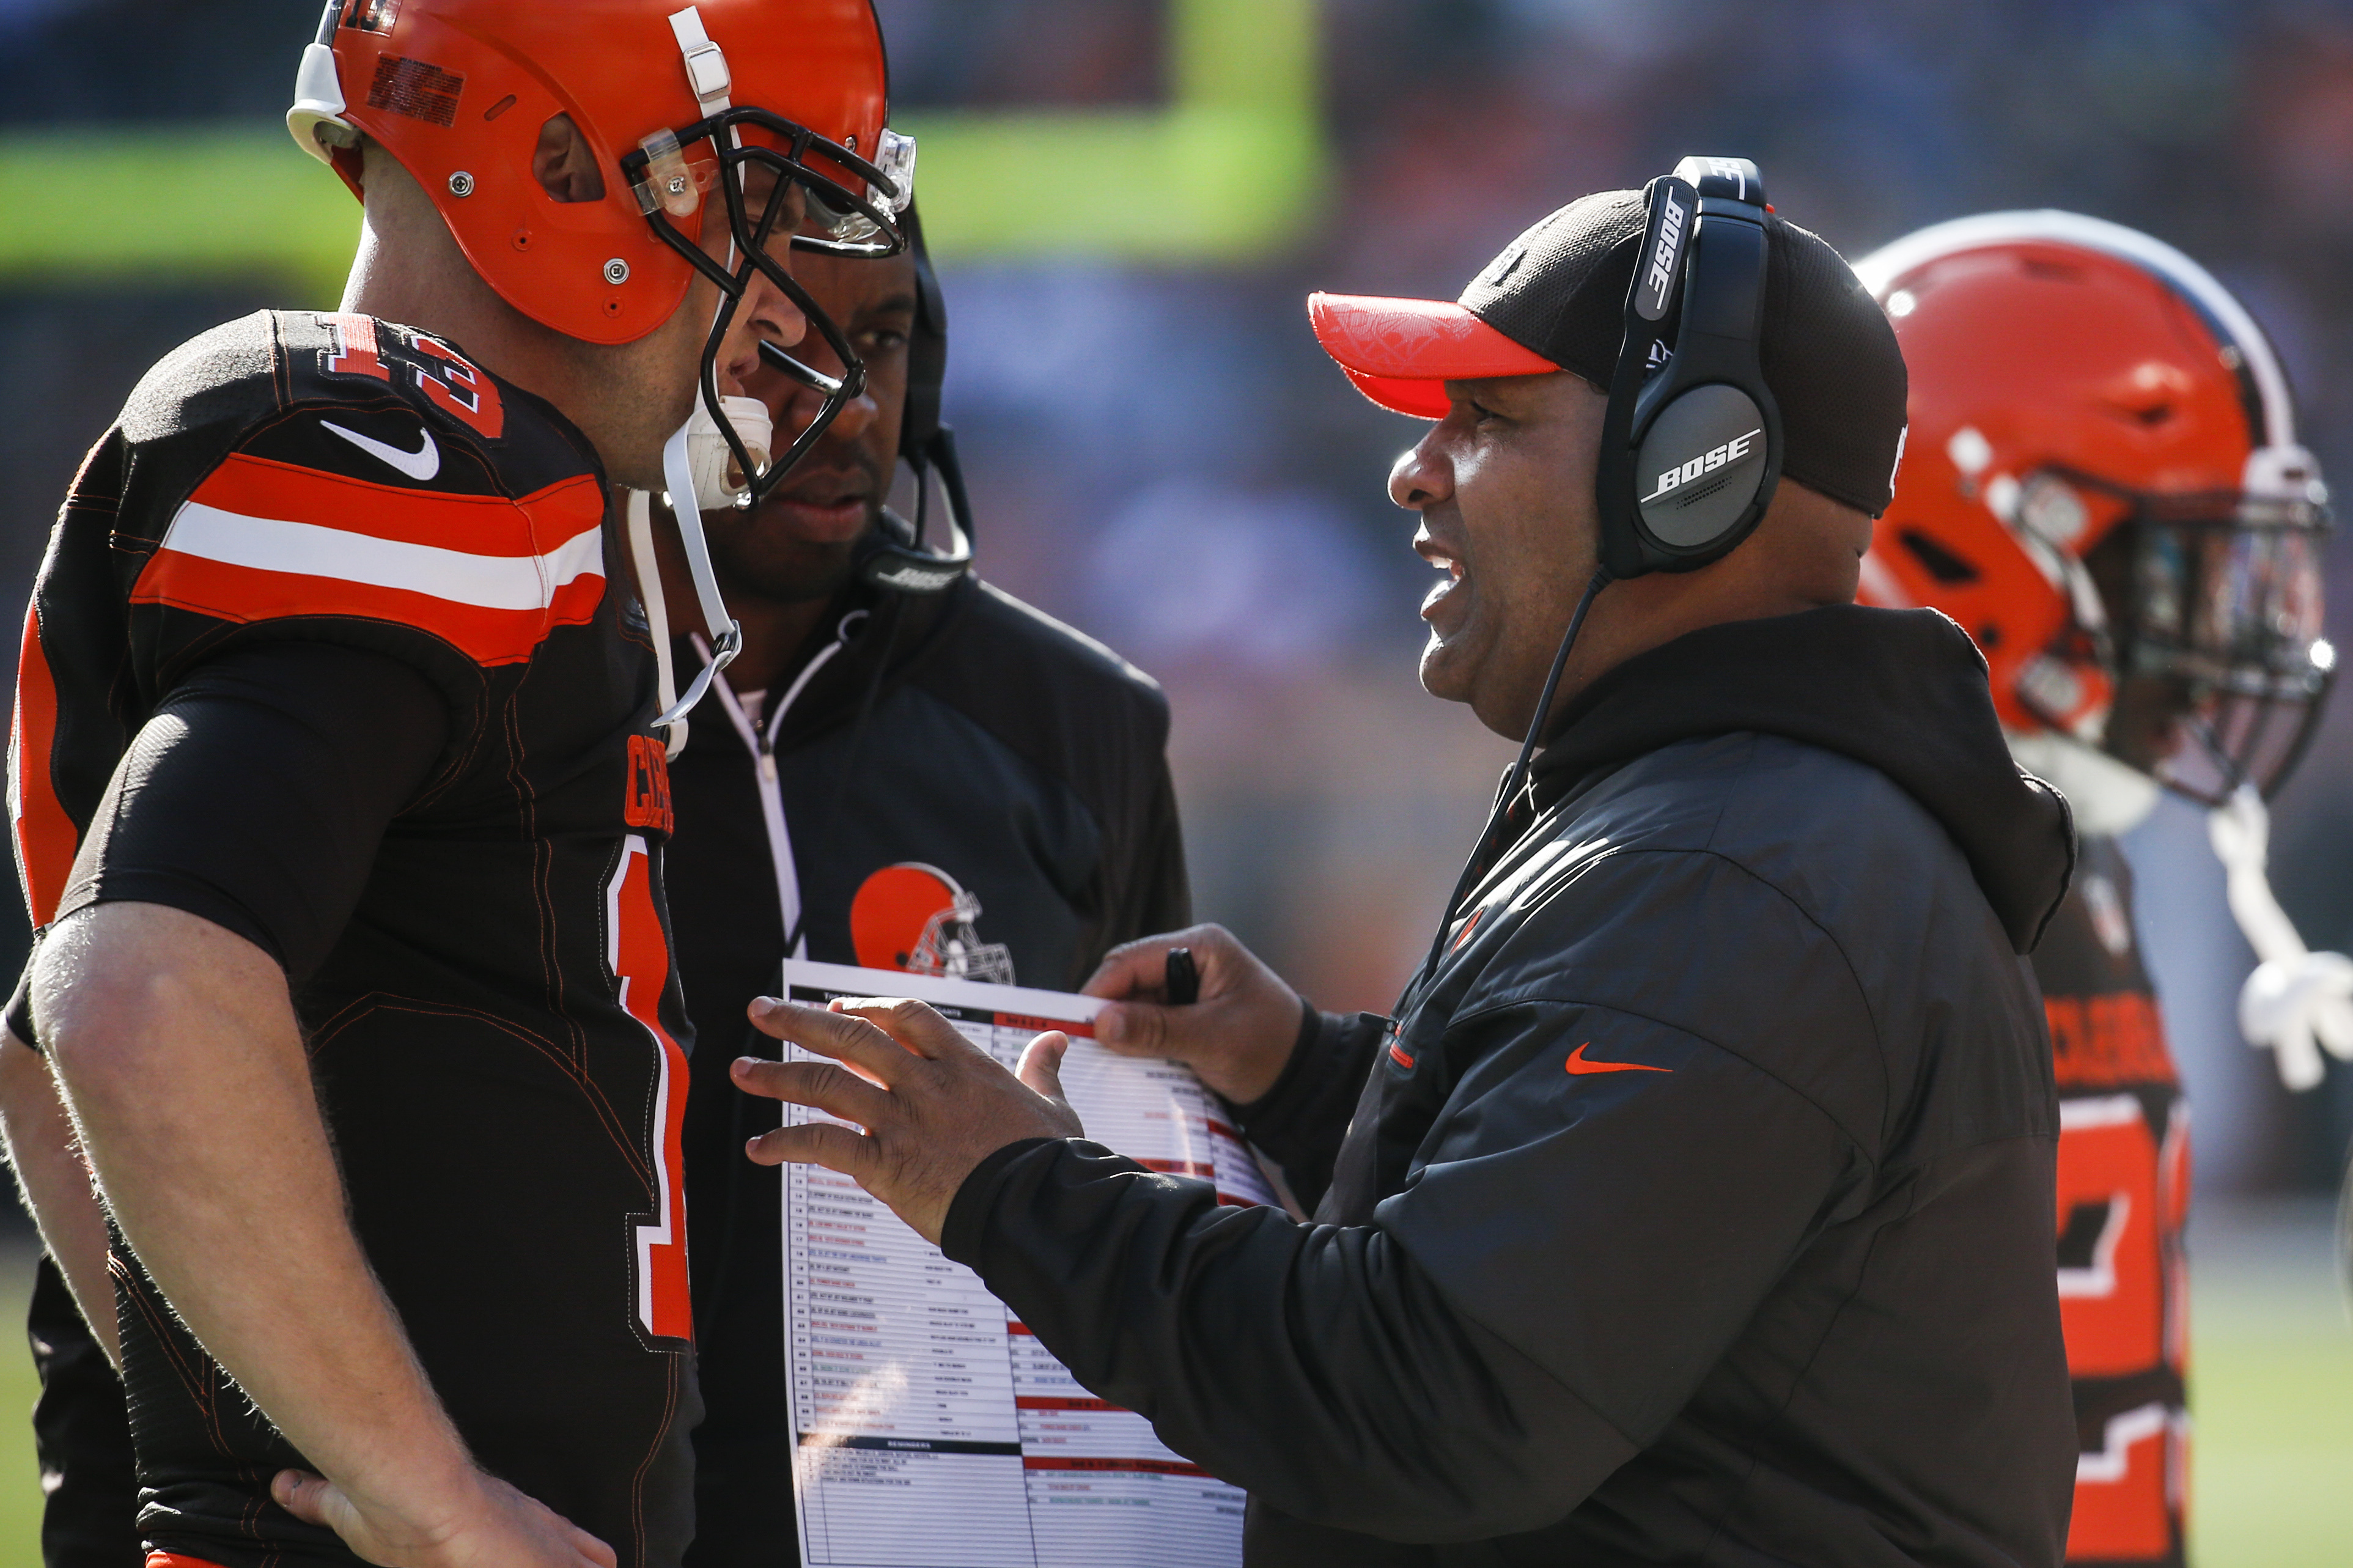 Cleveland Browns head coach Hue Jackson, right, meets with quarterback Josh McCown (13) on the sidelines in the first half of an NFL football game against the New York Giants, Sunday, Nov. 27, 2016, in Cleveland. (AP Photo/Ron Schwane)